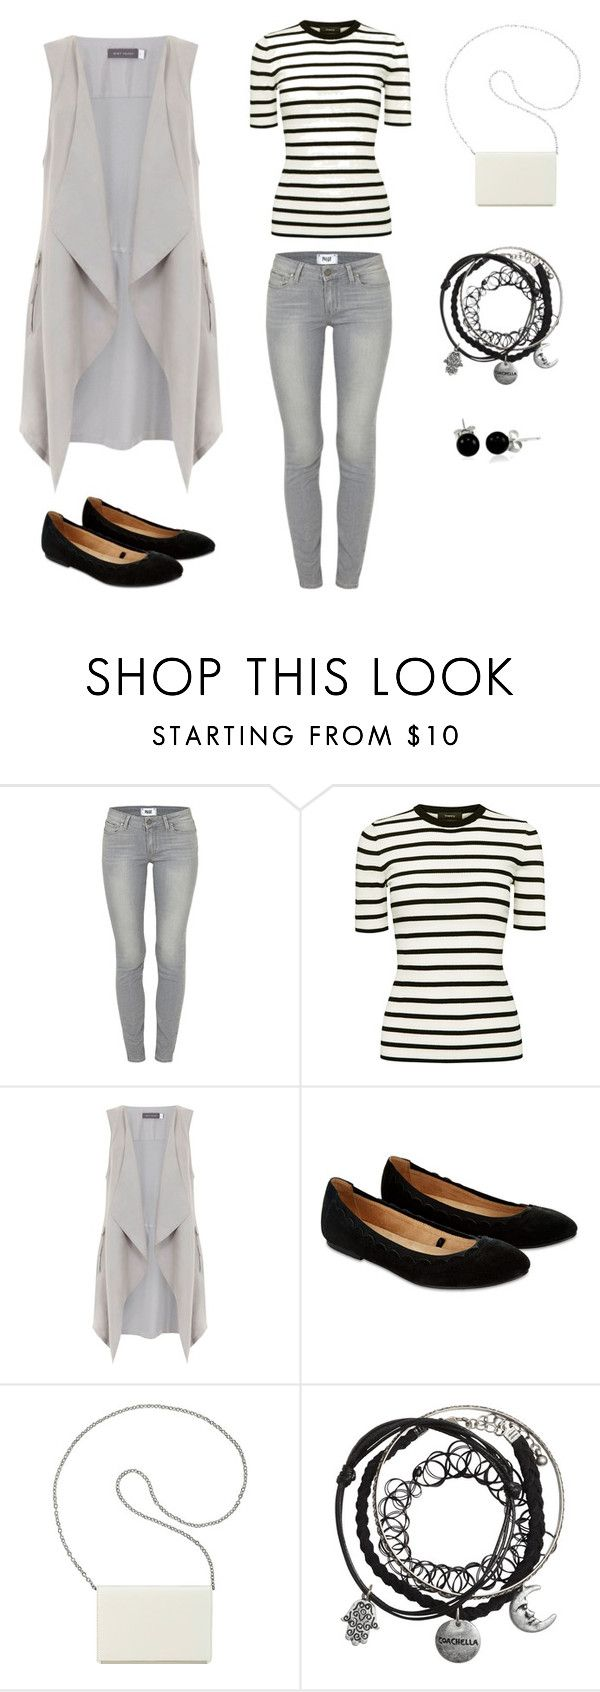 """сет 2"" by alionka-100 on Polyvore featuring мода, Paige Denim, Theory, Mint Velvet, Accessorize, Nine West и Bling Jewelry"